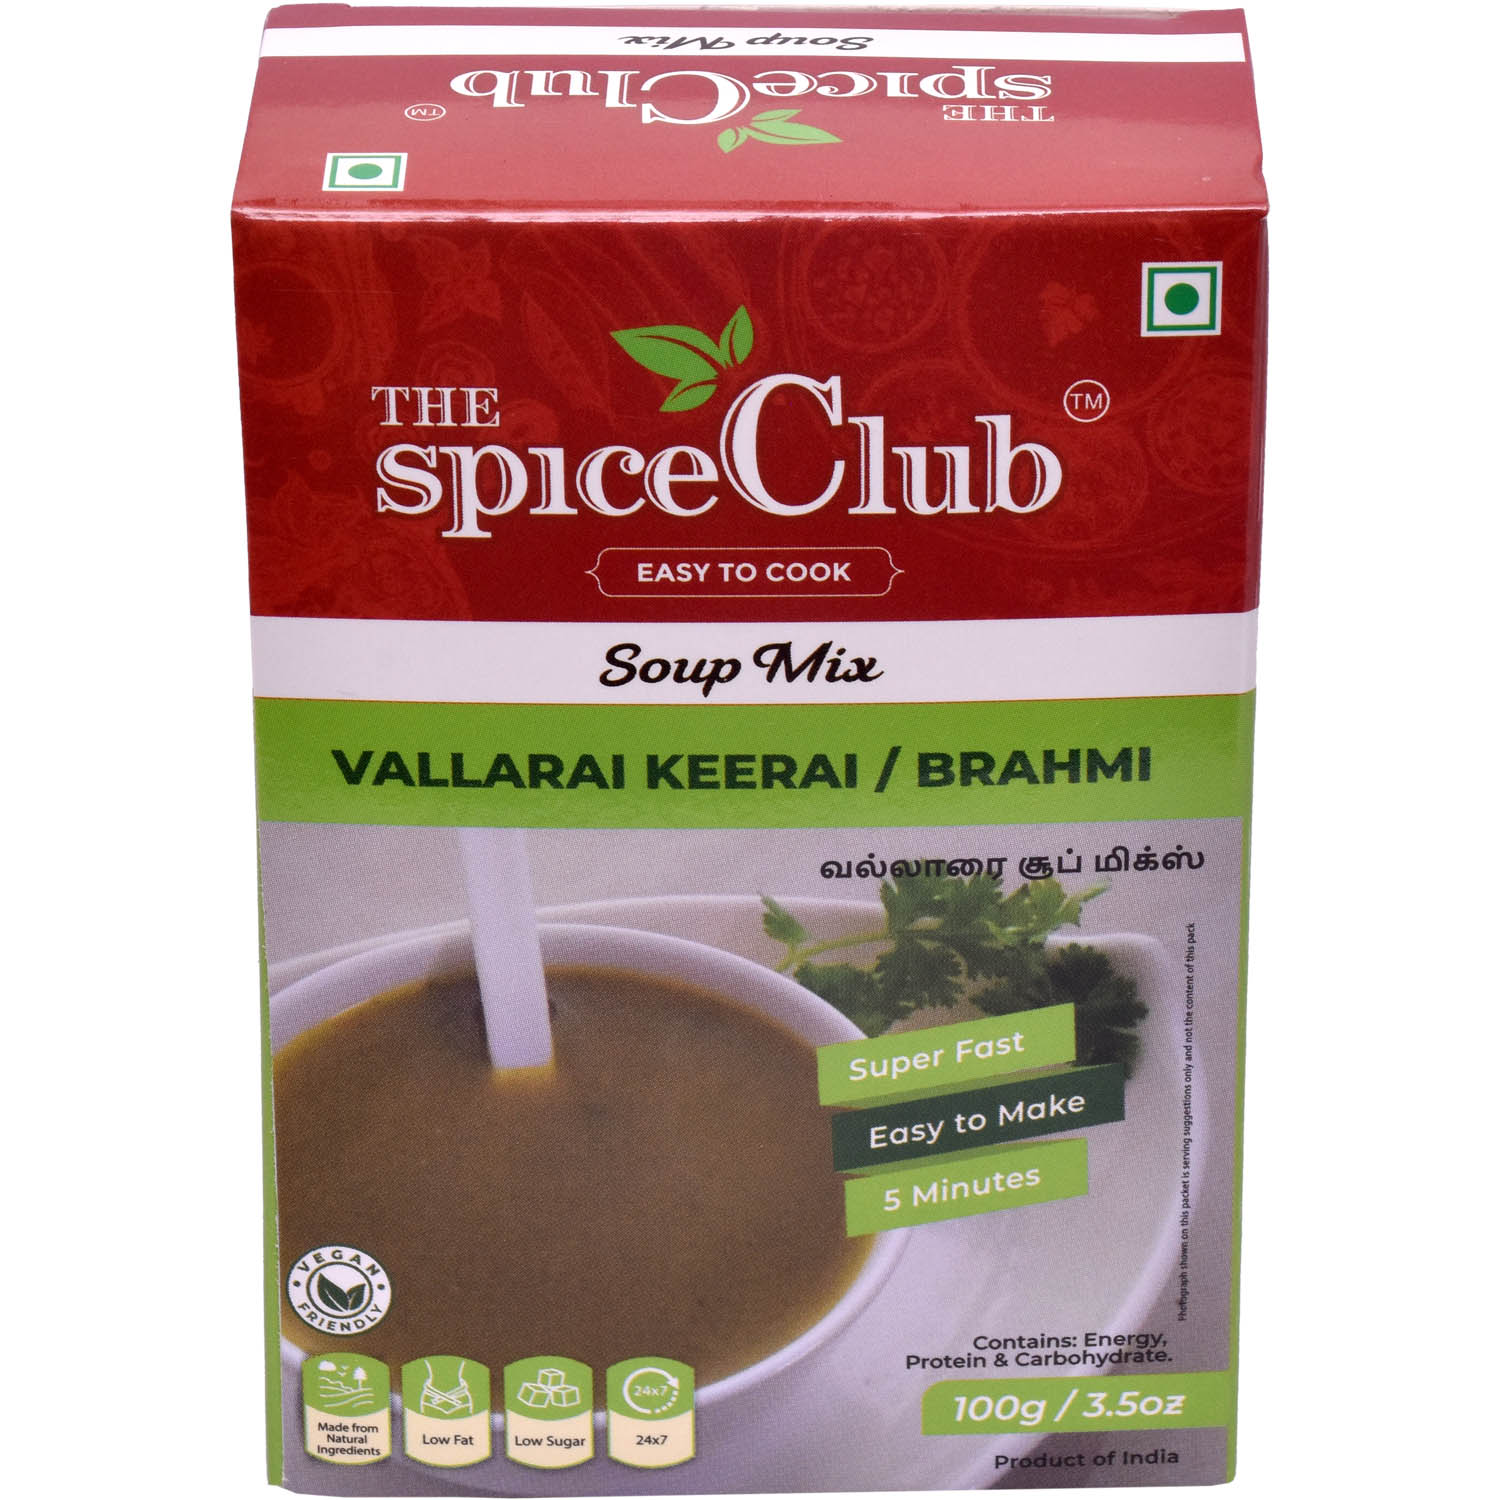 Vallarai Keerai / Brahmi Soup Mix - 100g